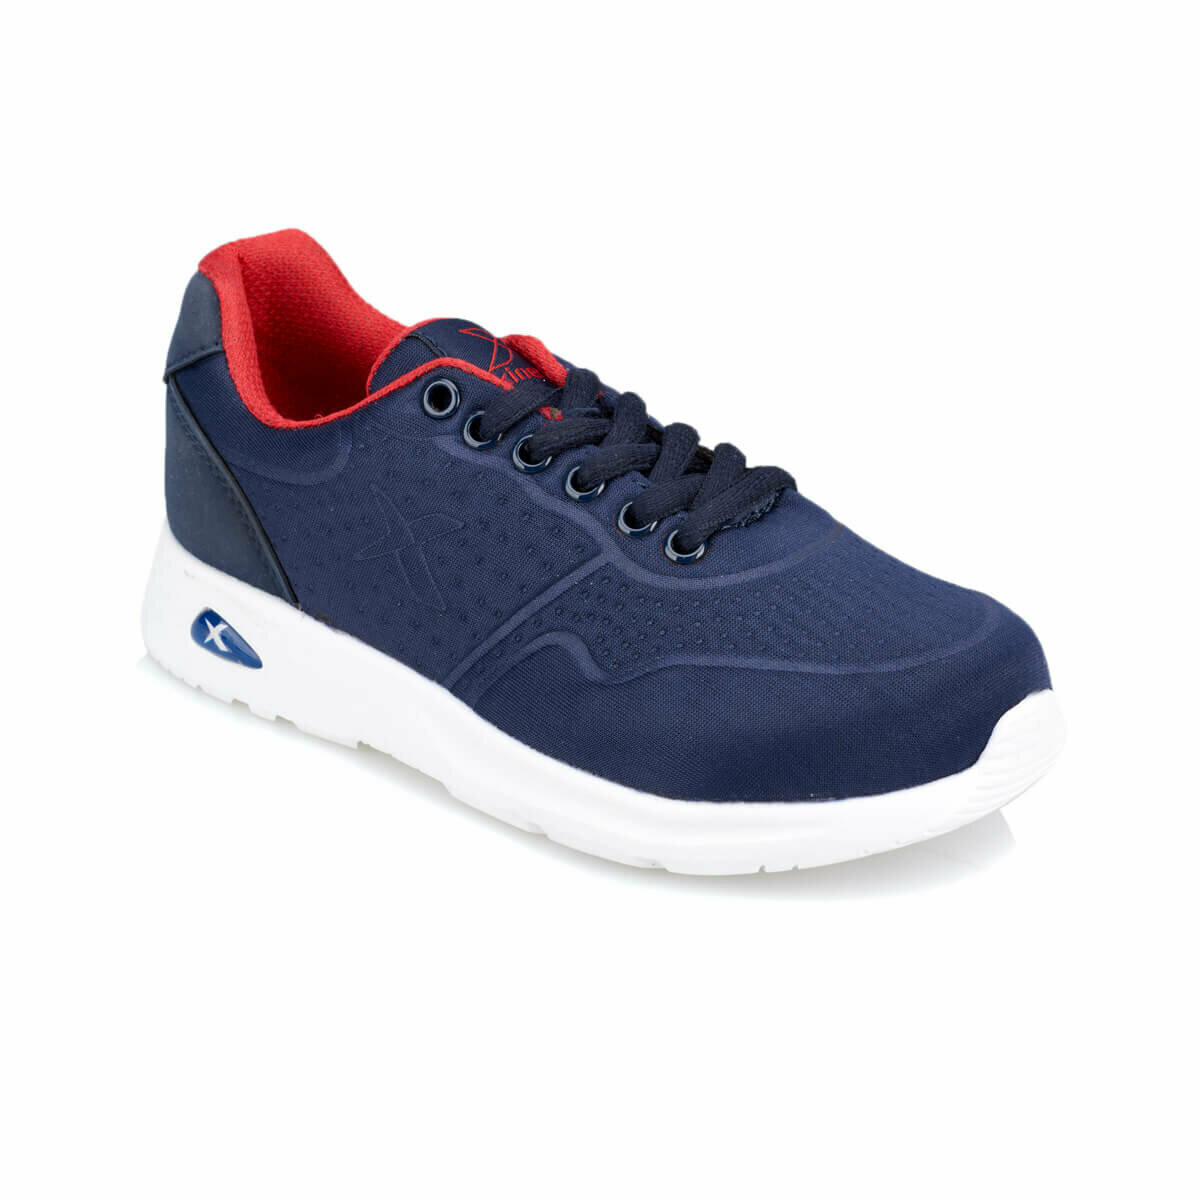 FLO MY Nose Navy Blue Male Child Running SHOES KINETIX